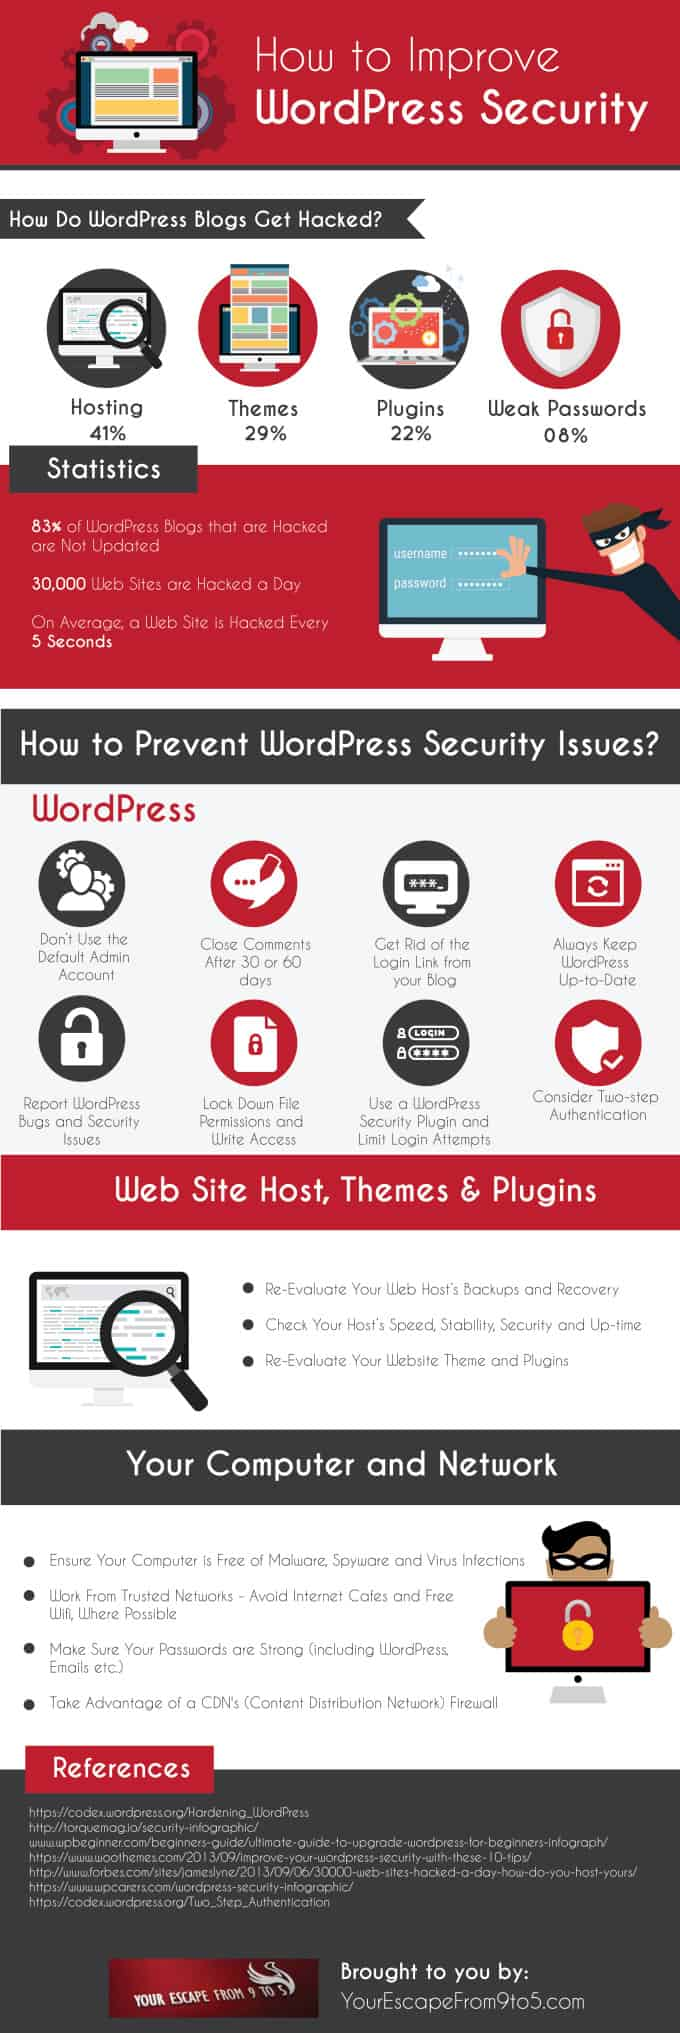 How to Improve WordPress Security Infographic.jpg-e1457572570696